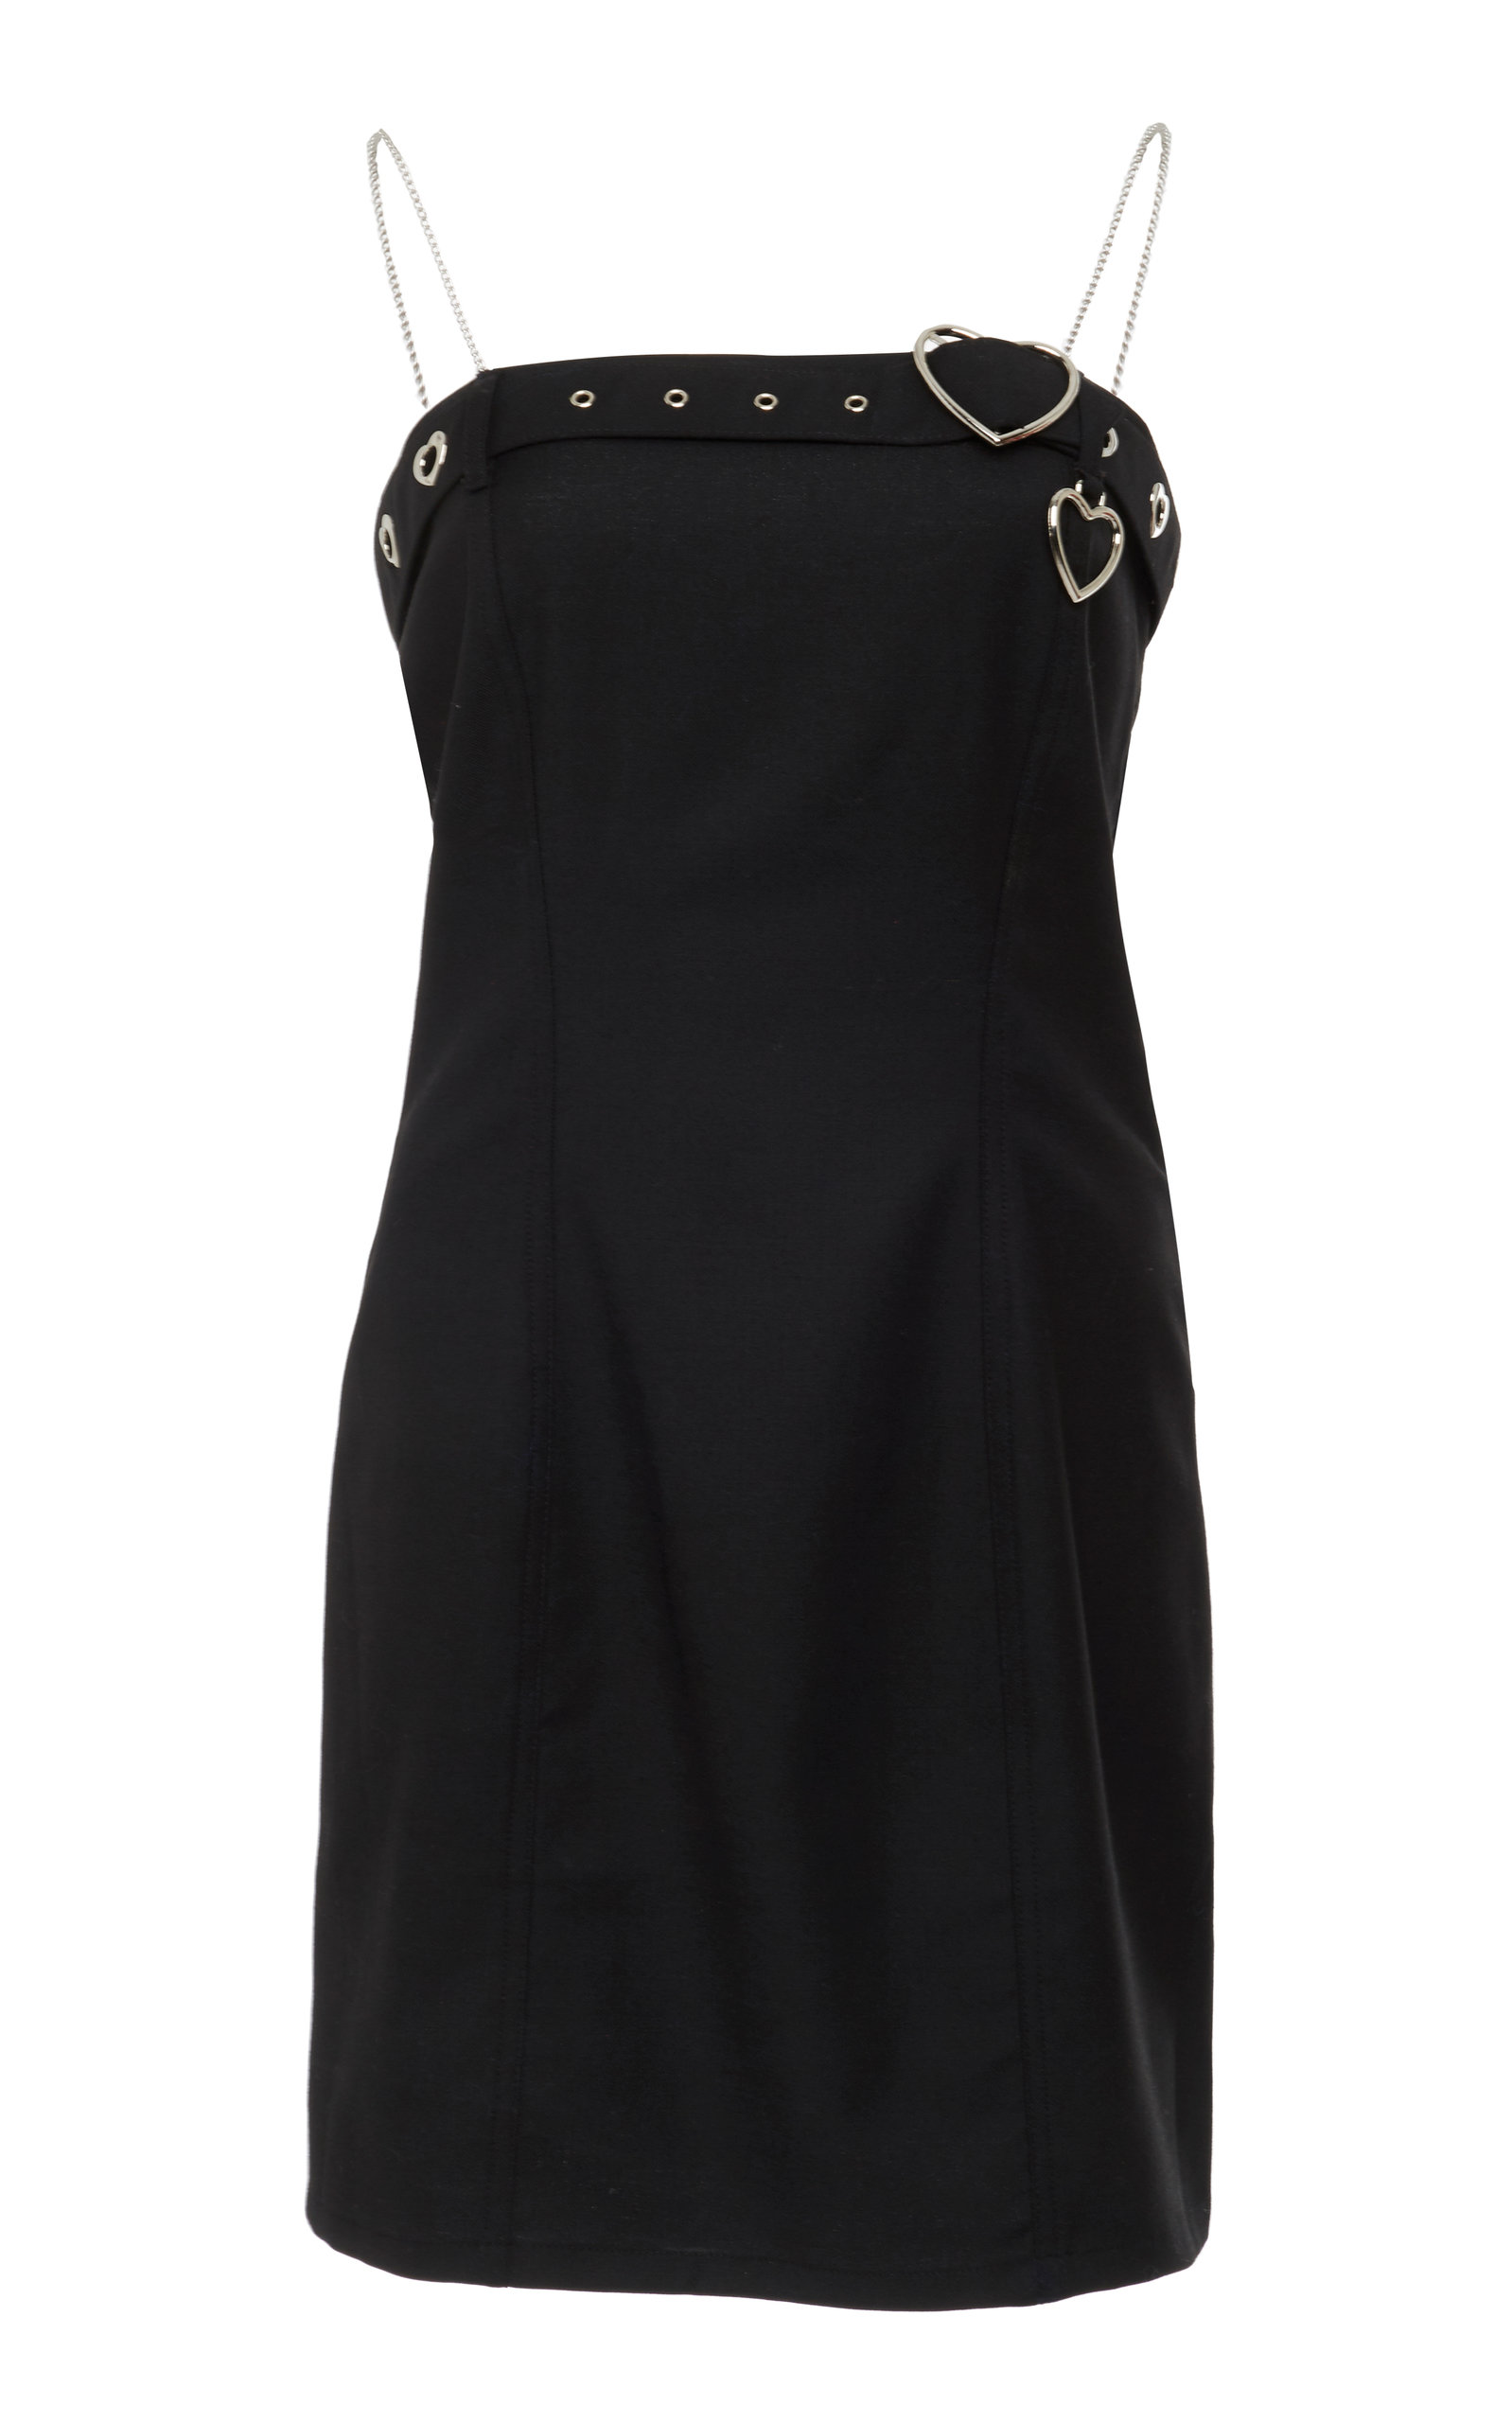 ADAM SELMAN Belt Mini Dress in Black